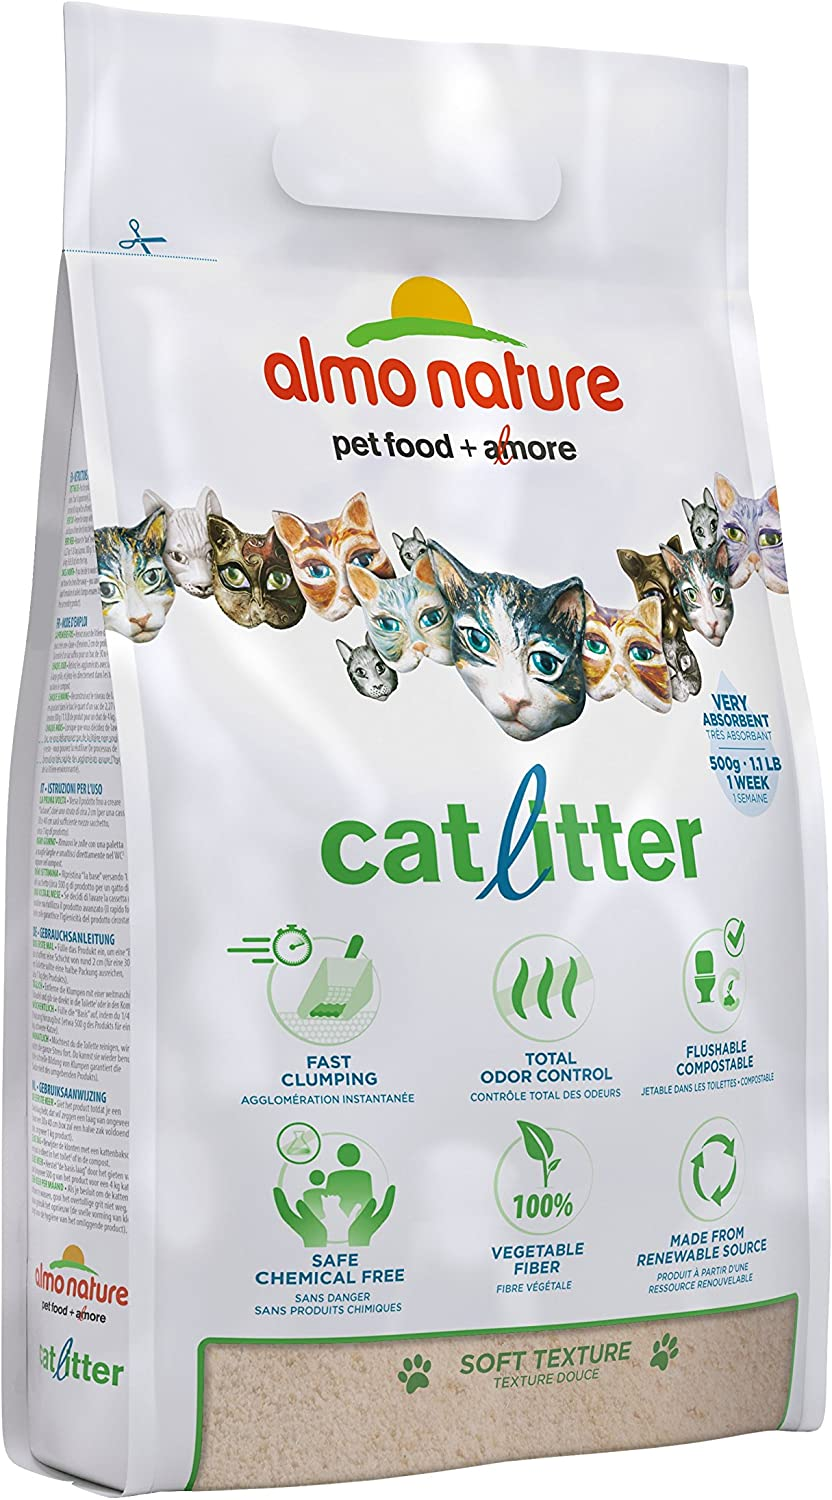 almo nature Natural Cat Litter 100% Plant-Based 10 Lb, 77